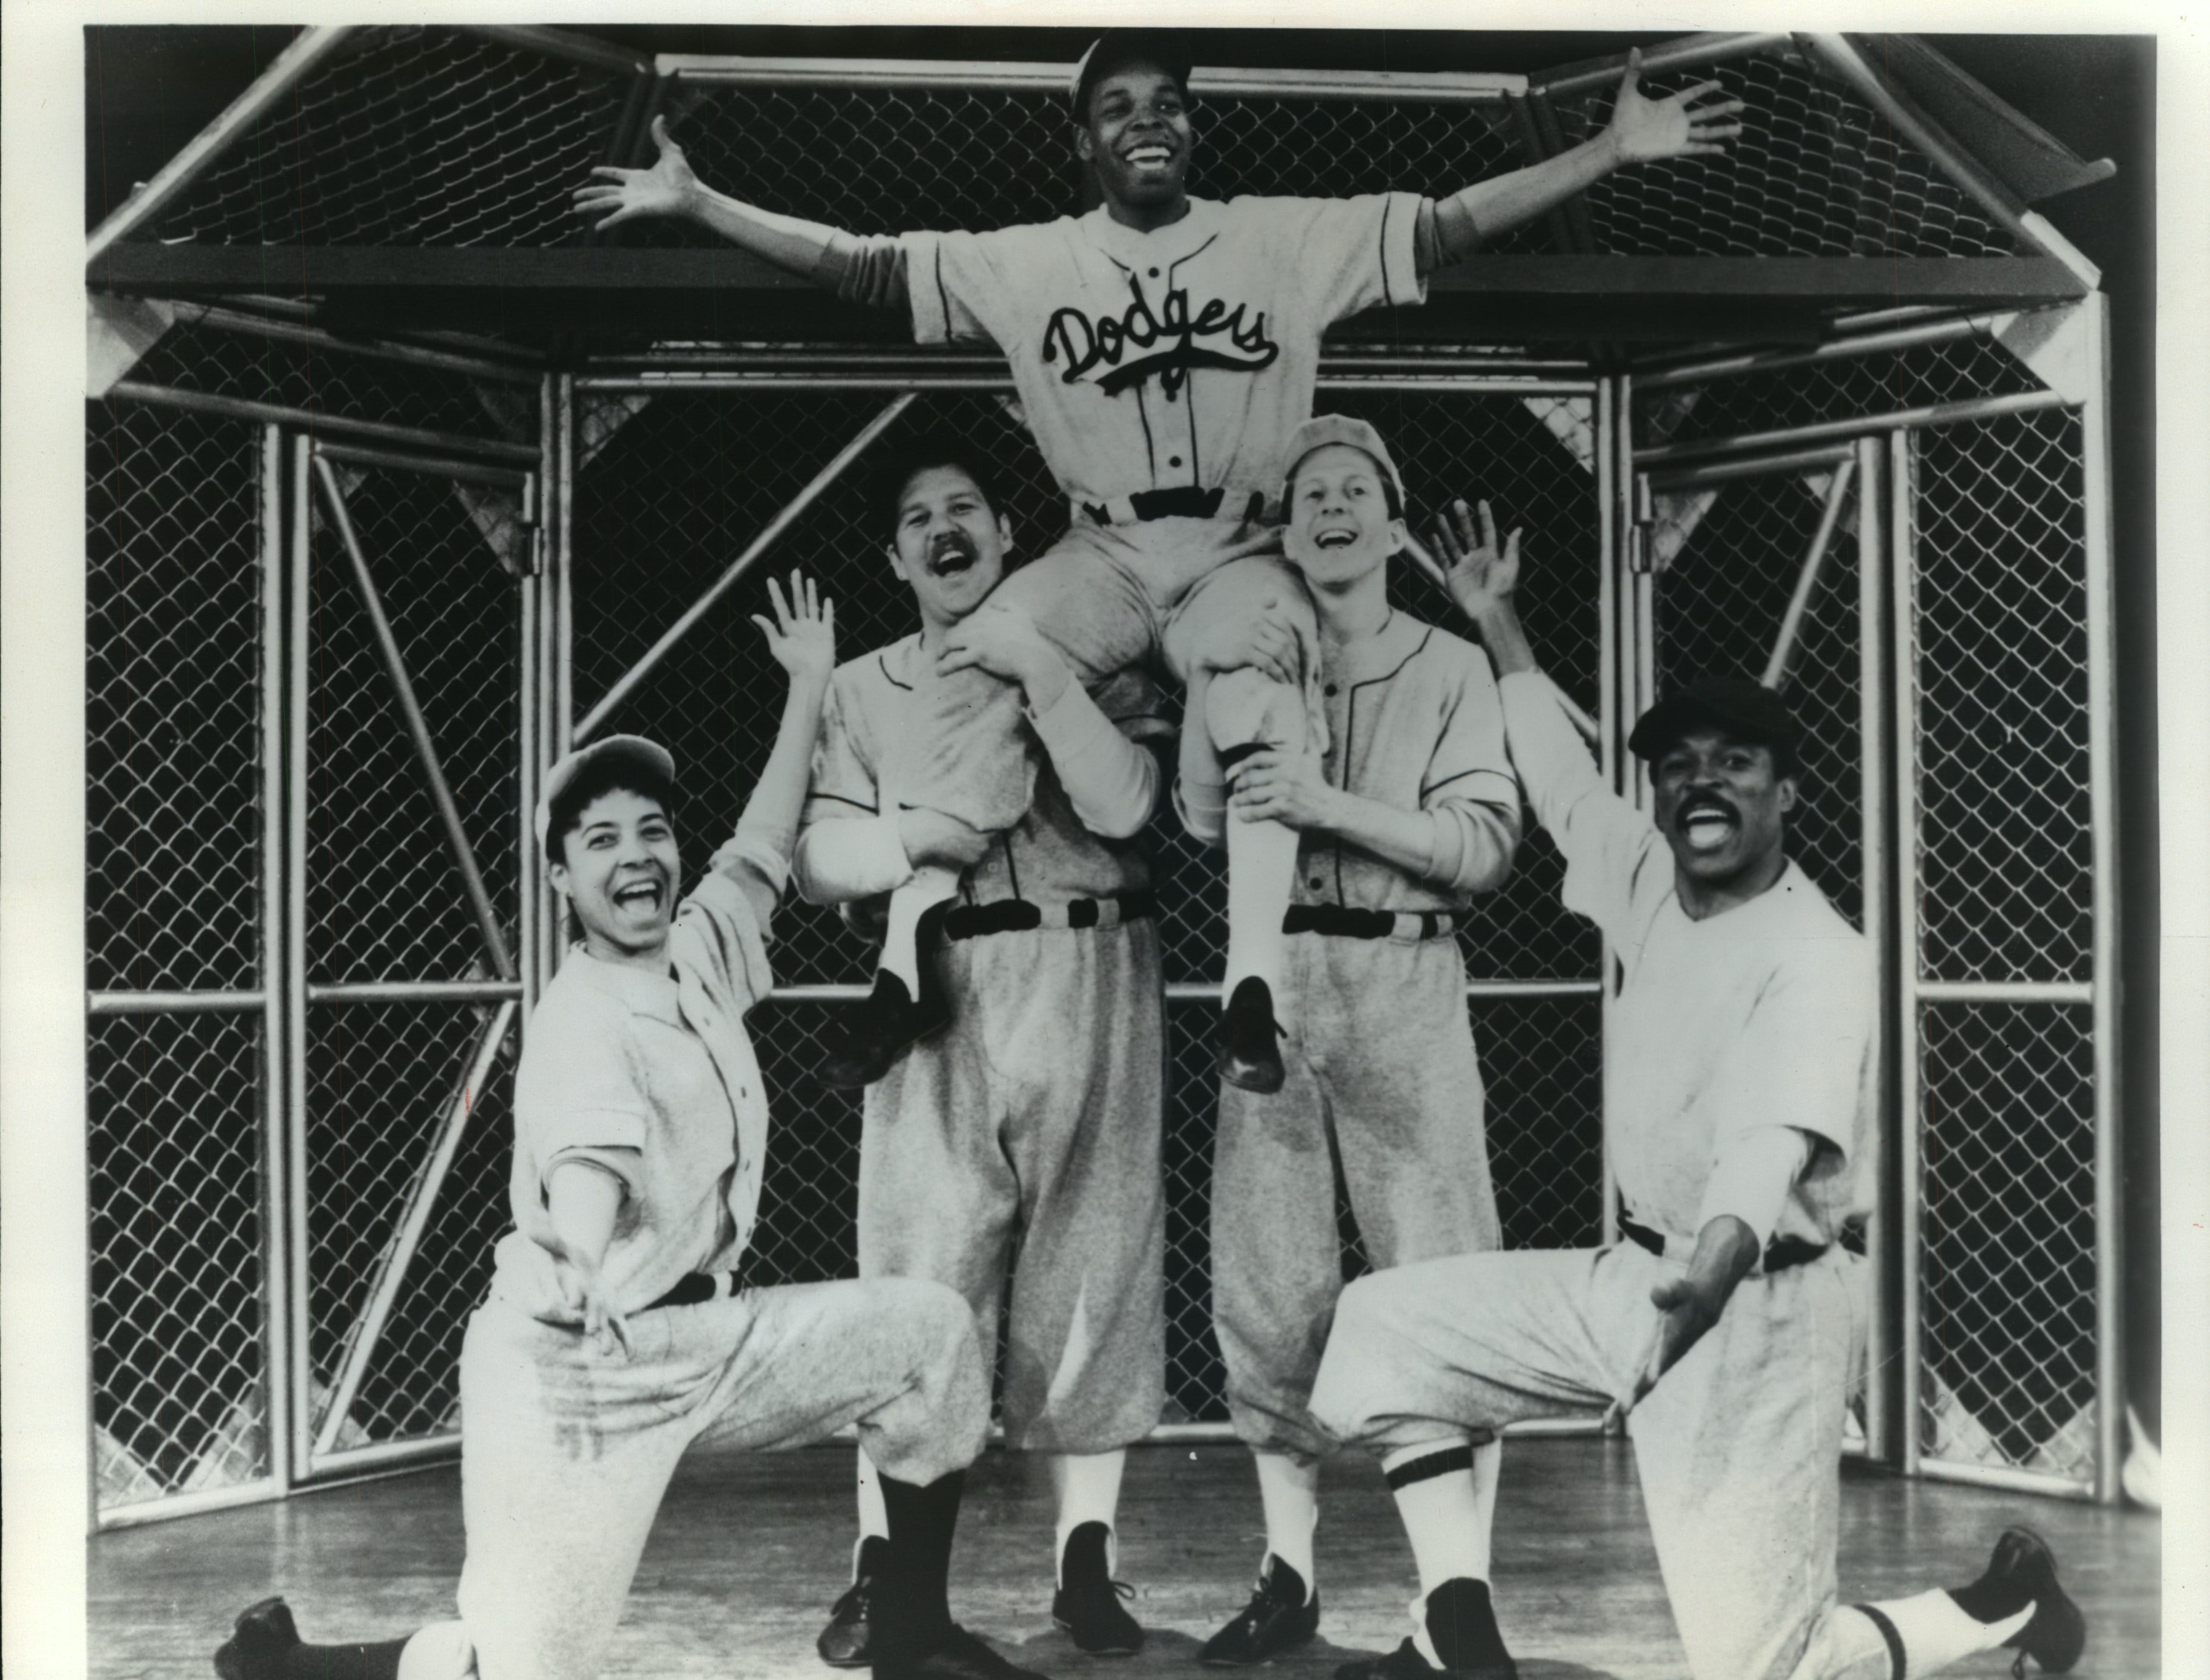 """""""Play to Win: The Story of Jackie Robinson"""" will be performed by TheatreWorks USA, a touring company, at 1:30 and 3:30 Sunday at the Todd Wehr Theater of the PAC, 929 Water St. Tickets are $8.50. The play presented by First Stage Milwaukee, will run through May 10."""